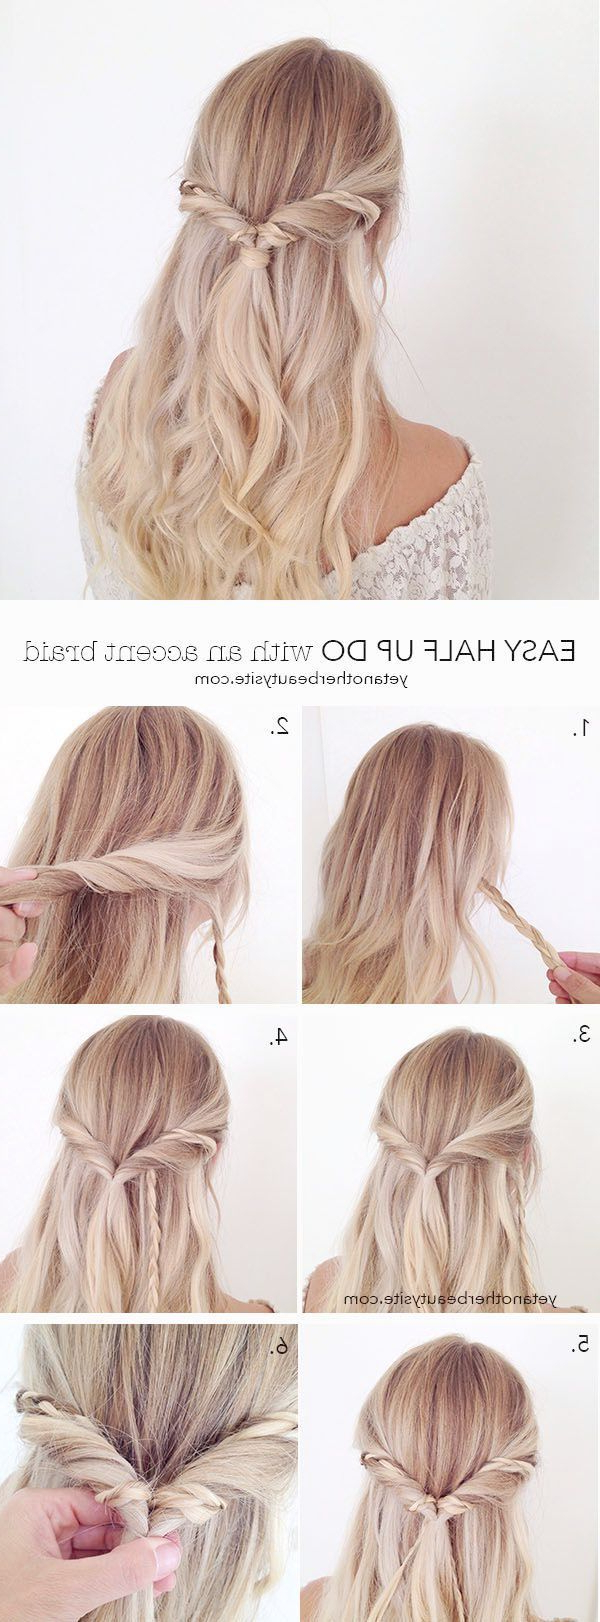 Most Recent Sleek And Simple Wedding Hairstyles For Simple Wedding Hairstyles Stepstep Wedding Hairstyles In (View 9 of 20)